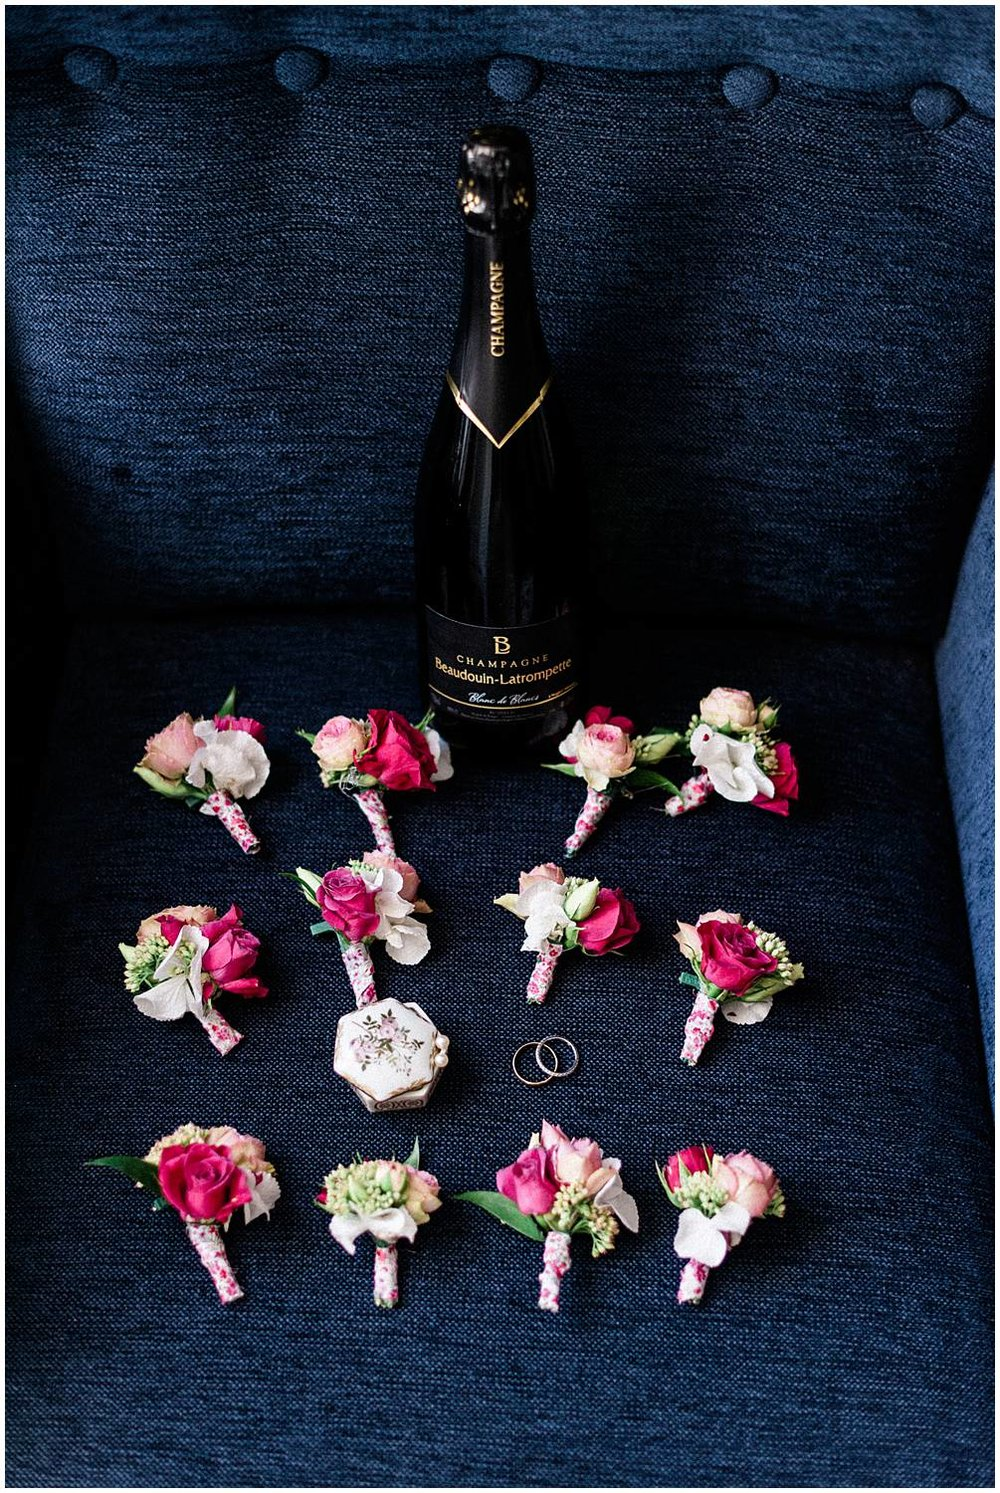 Champagne, details, rings during a wedding in Reims